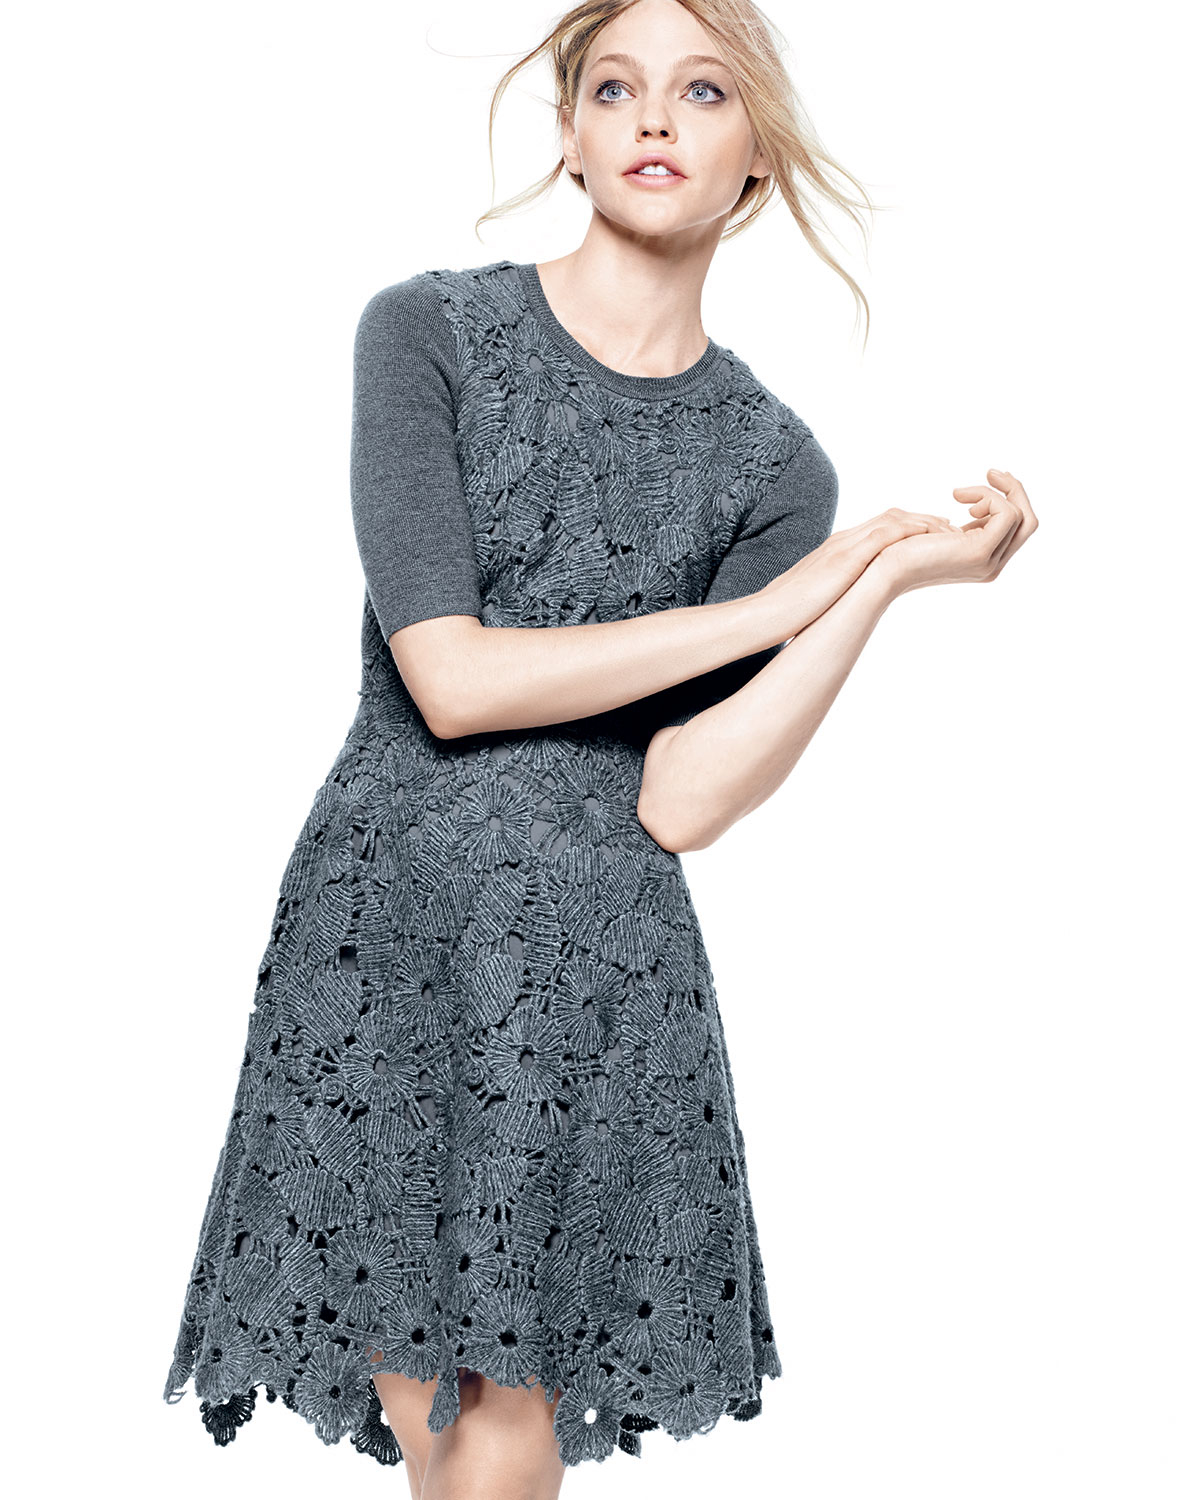 Lela rose Half-sleeve Floral-lace Combo Dress in Gray | Lyst